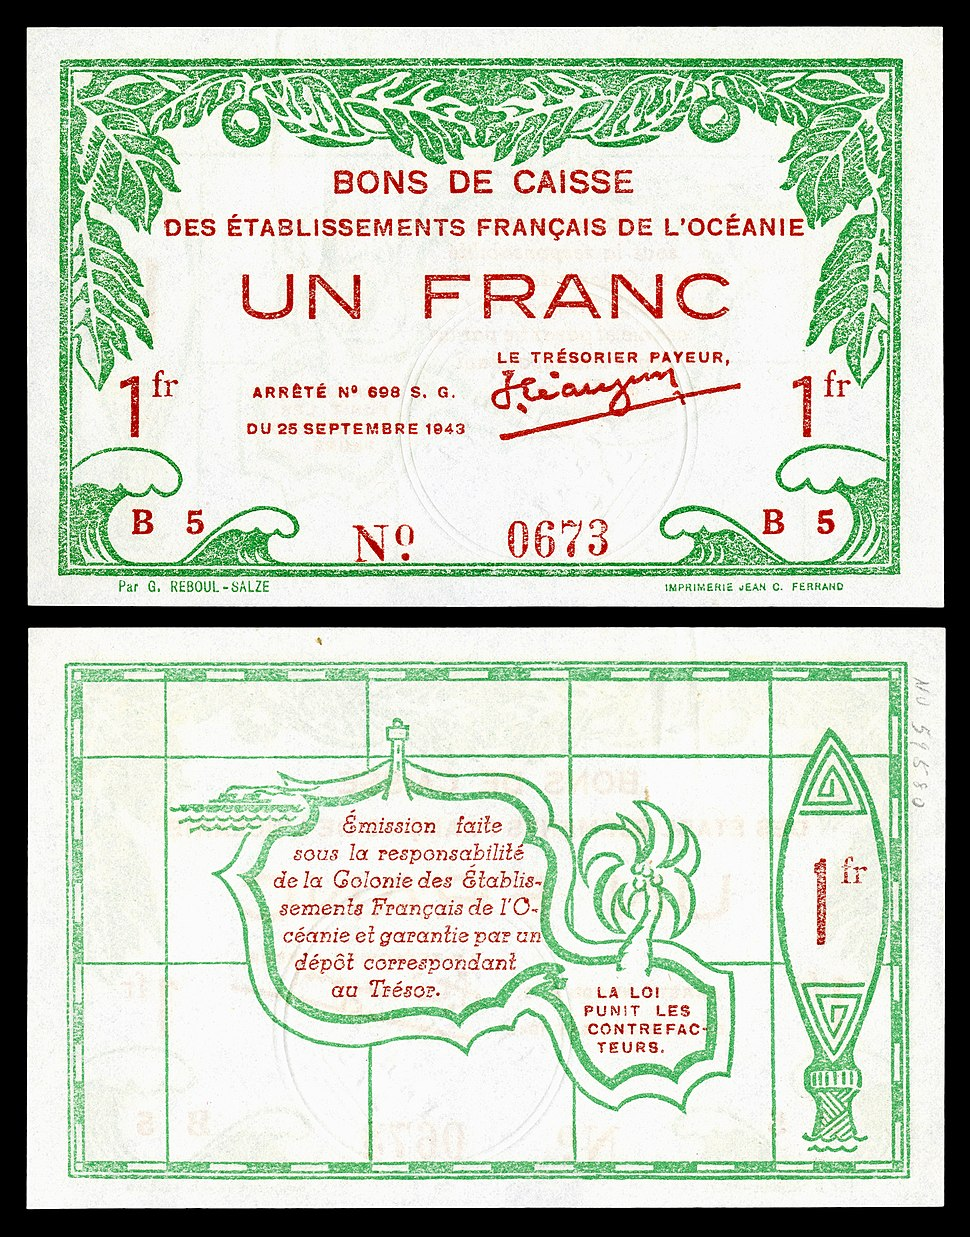 FRE-OCE-11-French Oceania-1 franc (1943)